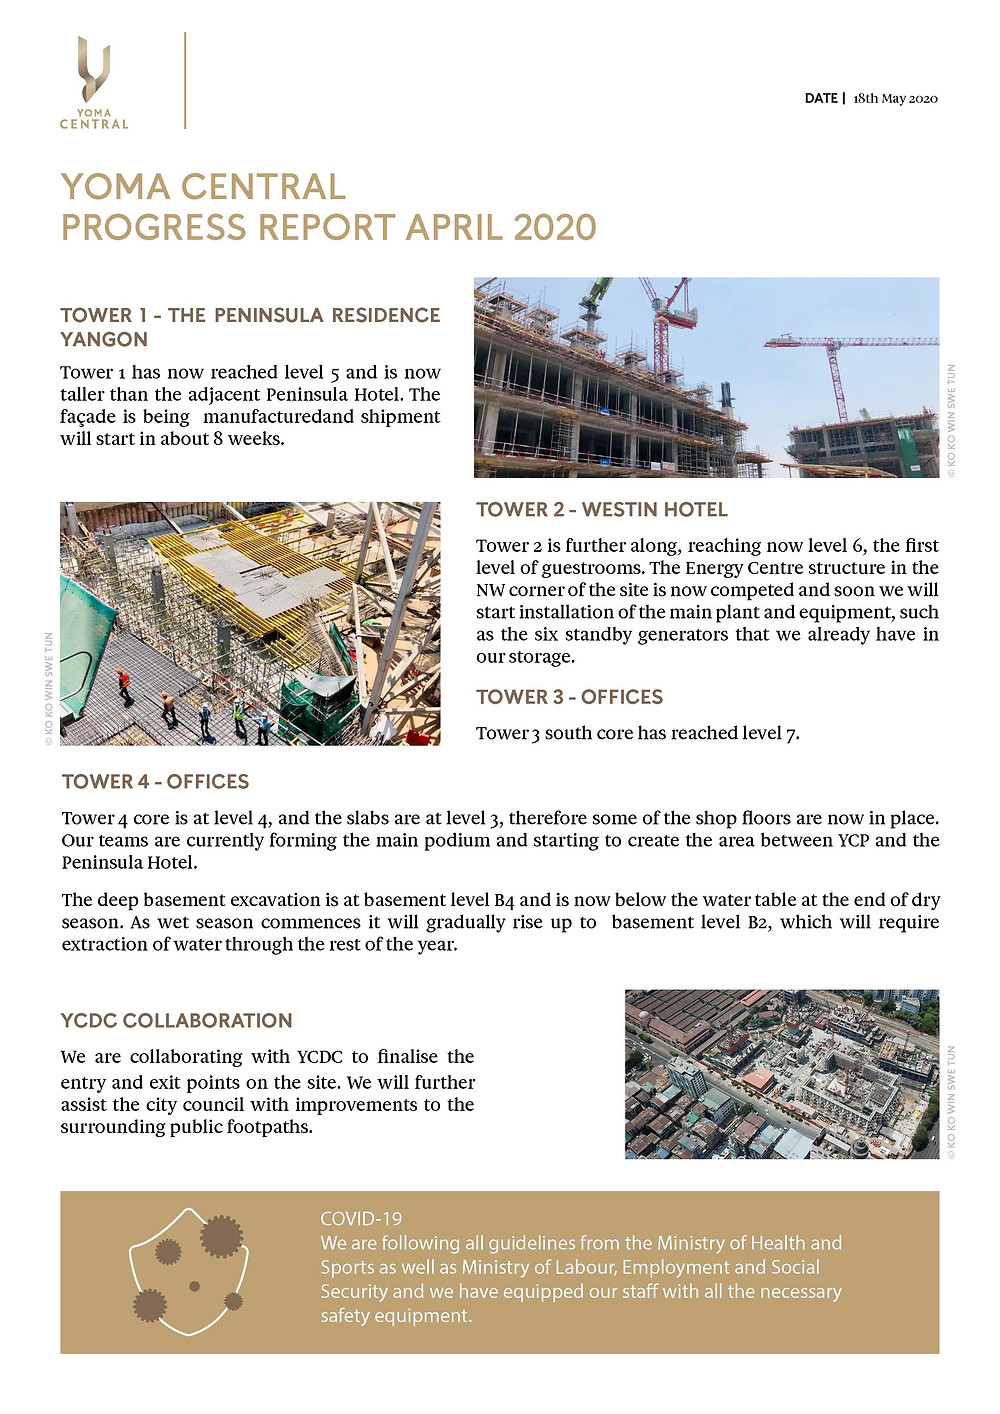 Yoma central progress report april 2020